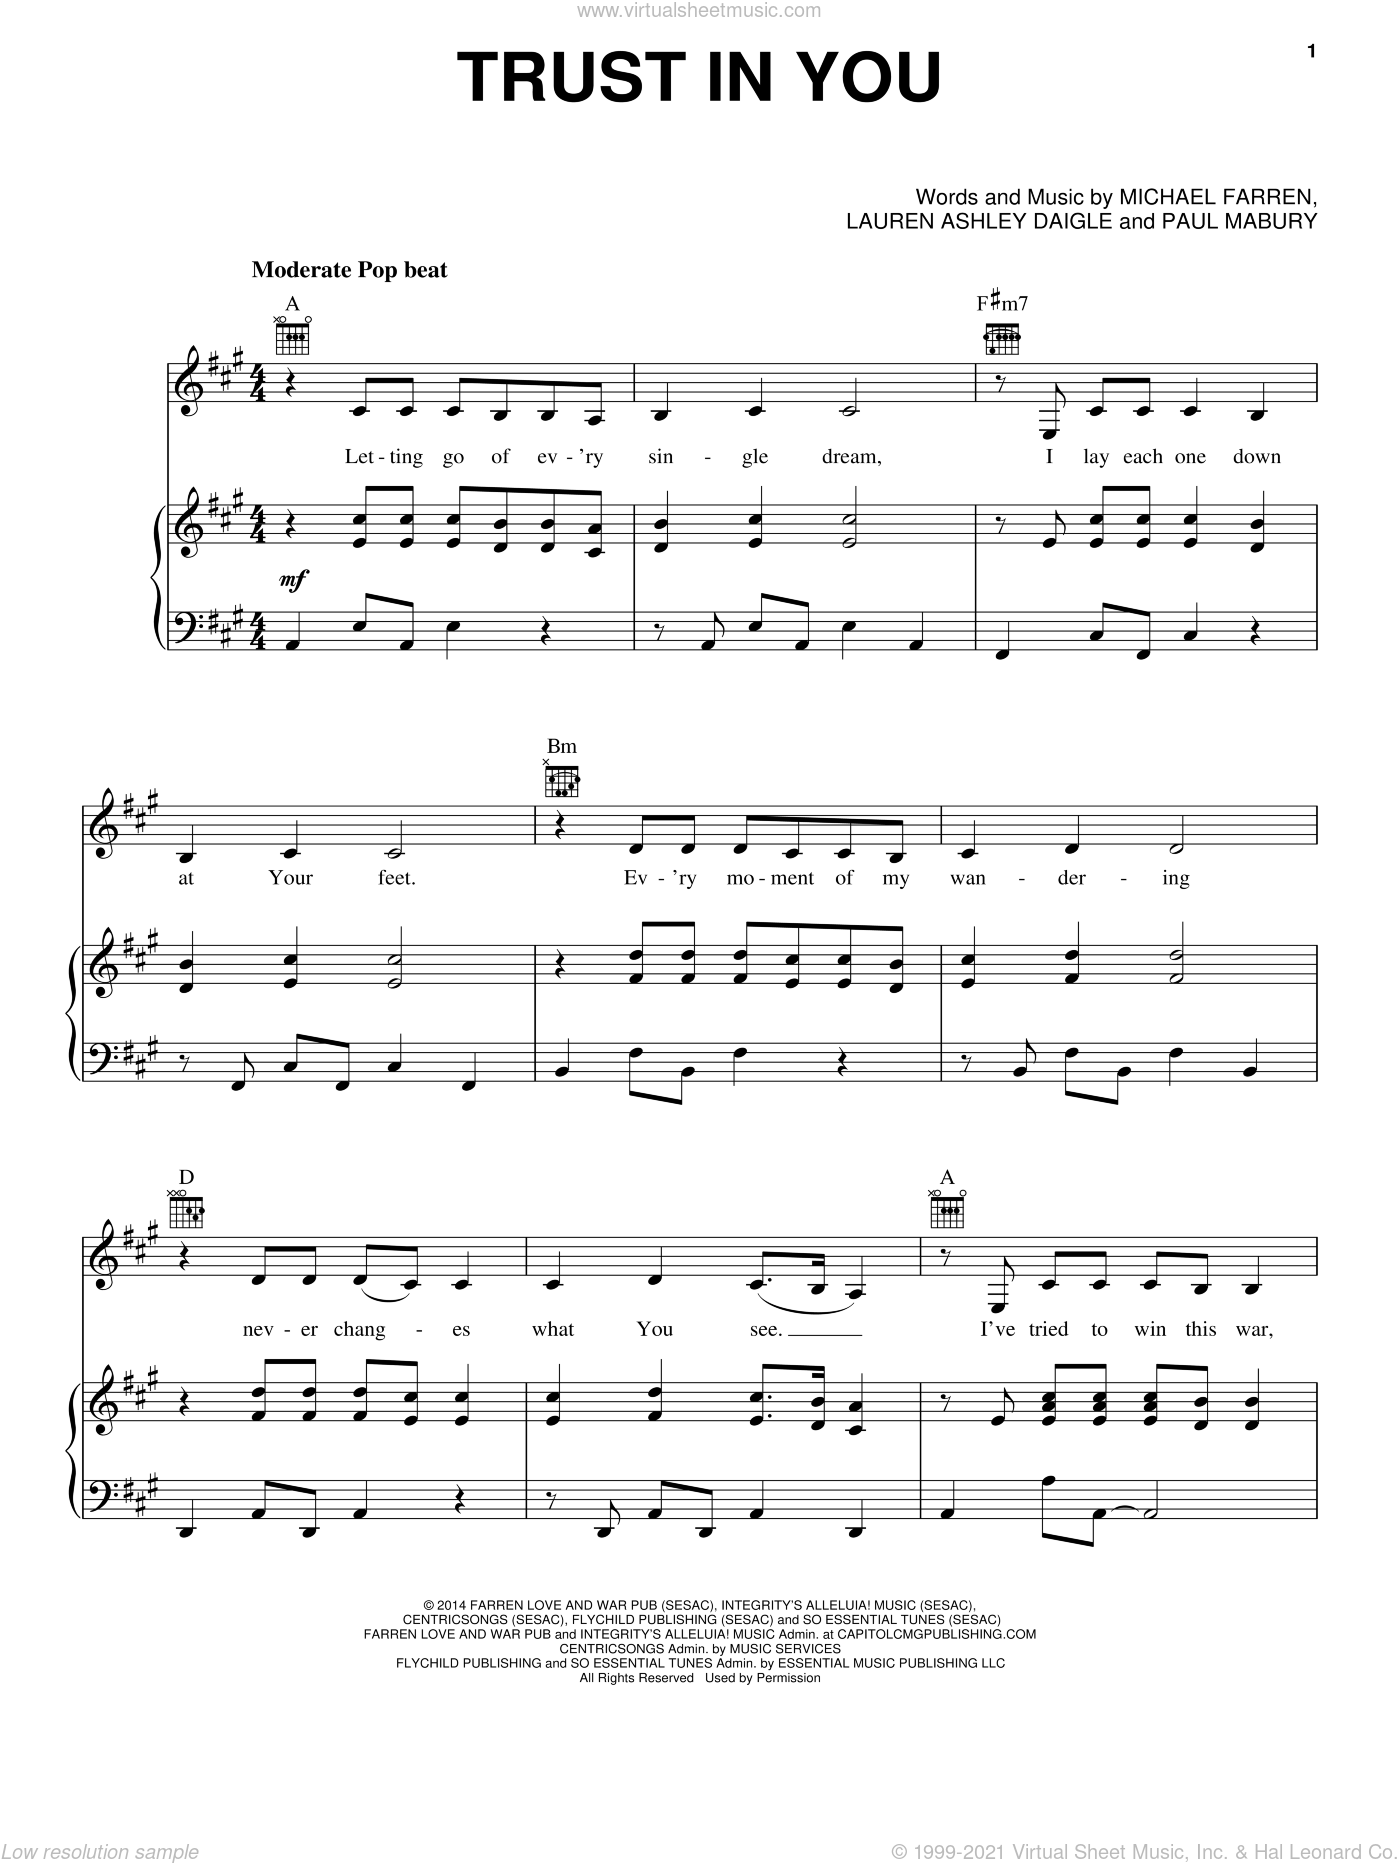 Trust In You sheet music for voice, piano or guitar by Paul Mabury. Score Image Preview.